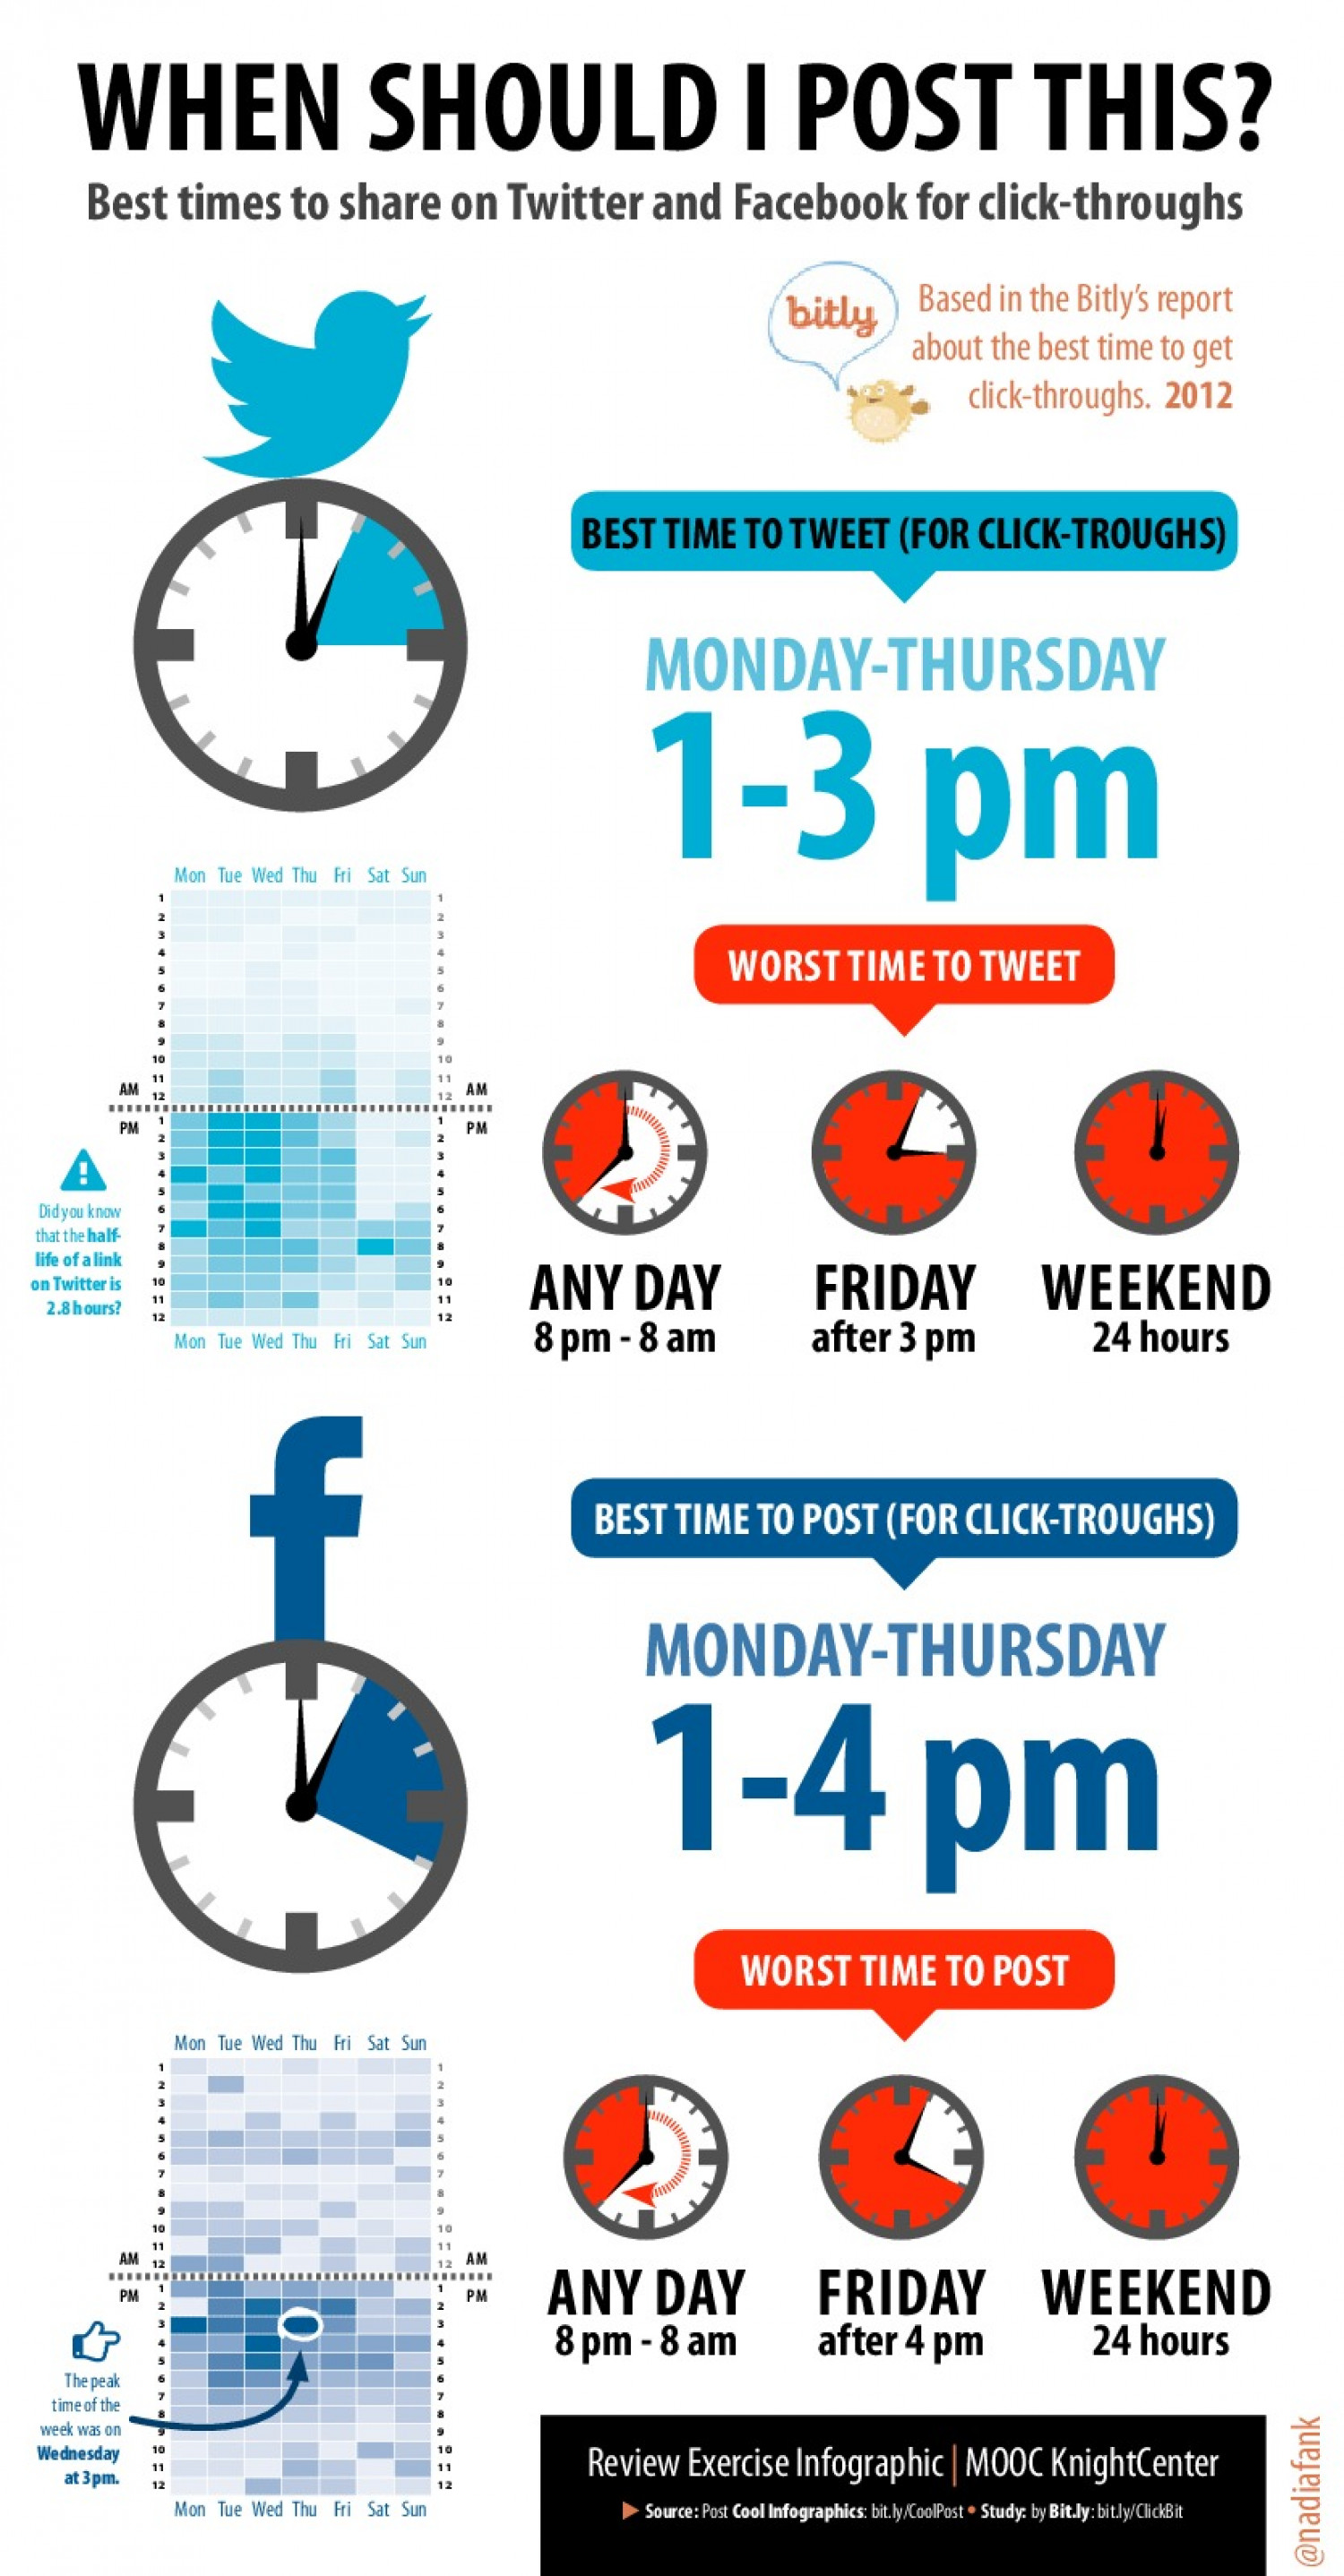 When should i post this? Infographic